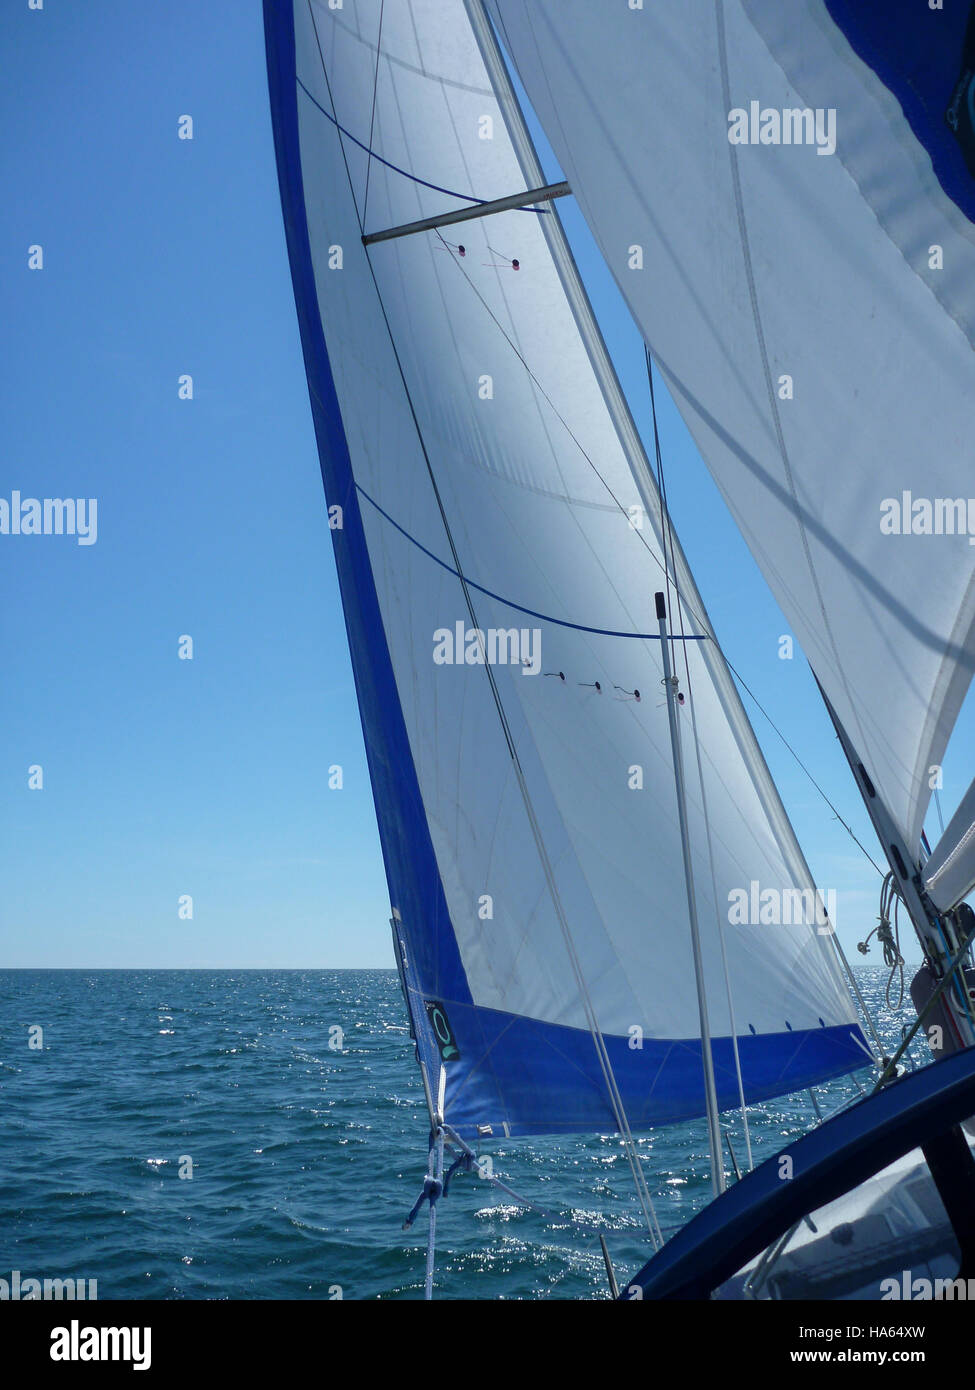 A yacht's foresail and mainsail against a blue sea and blue cloudless sky with telltales flying perfectly. - Stock Image